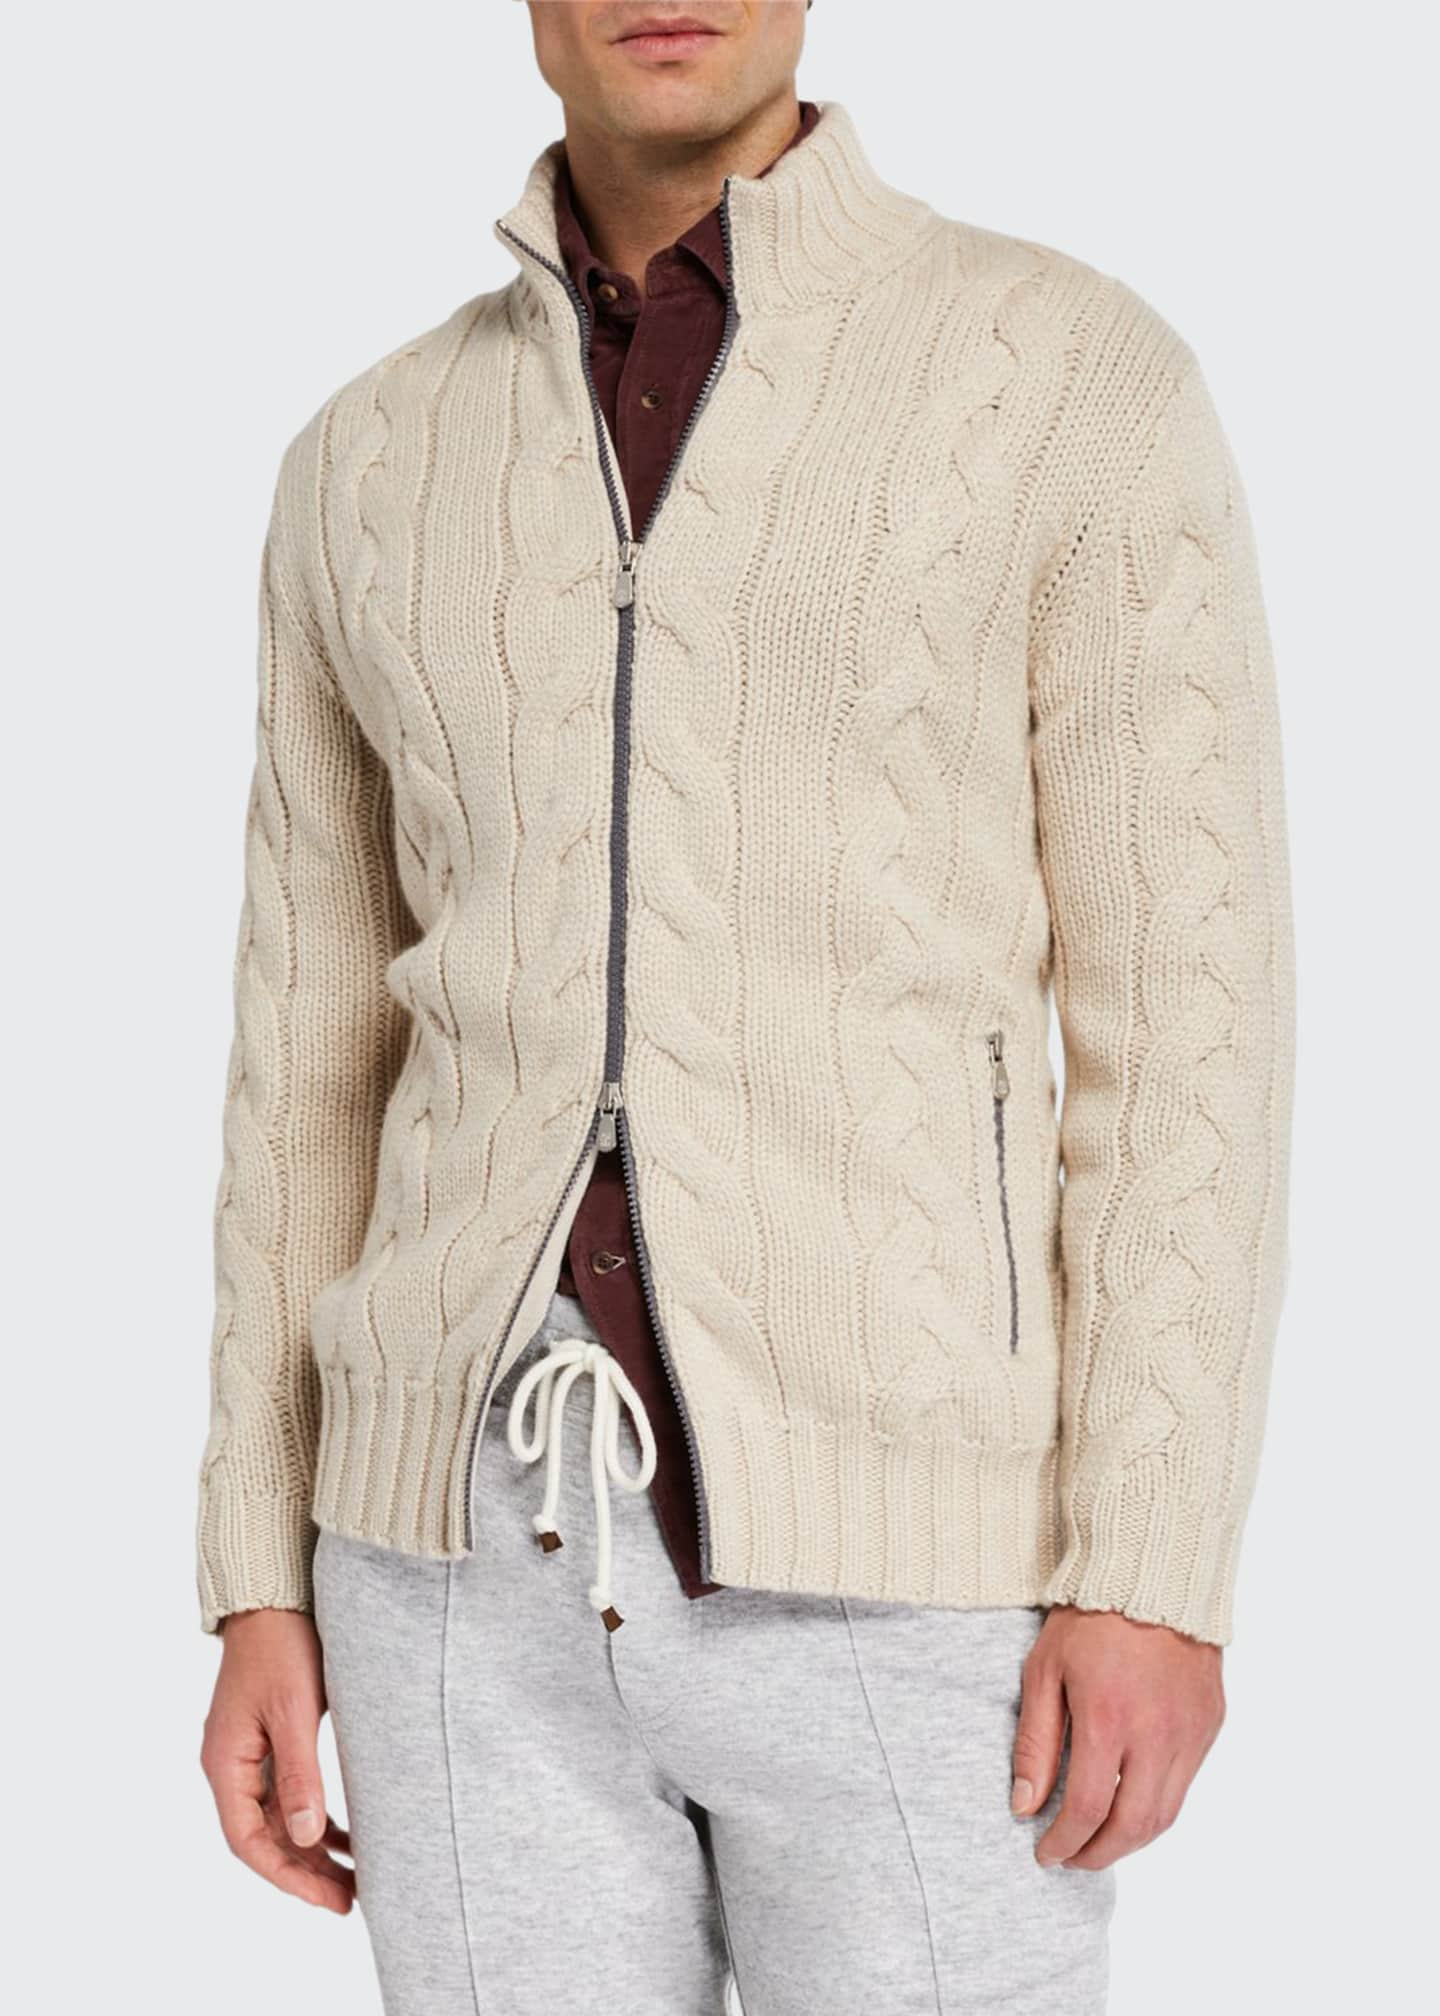 Brunello Cucinelli Men's Cashmere Cable Knit Zip Sweater